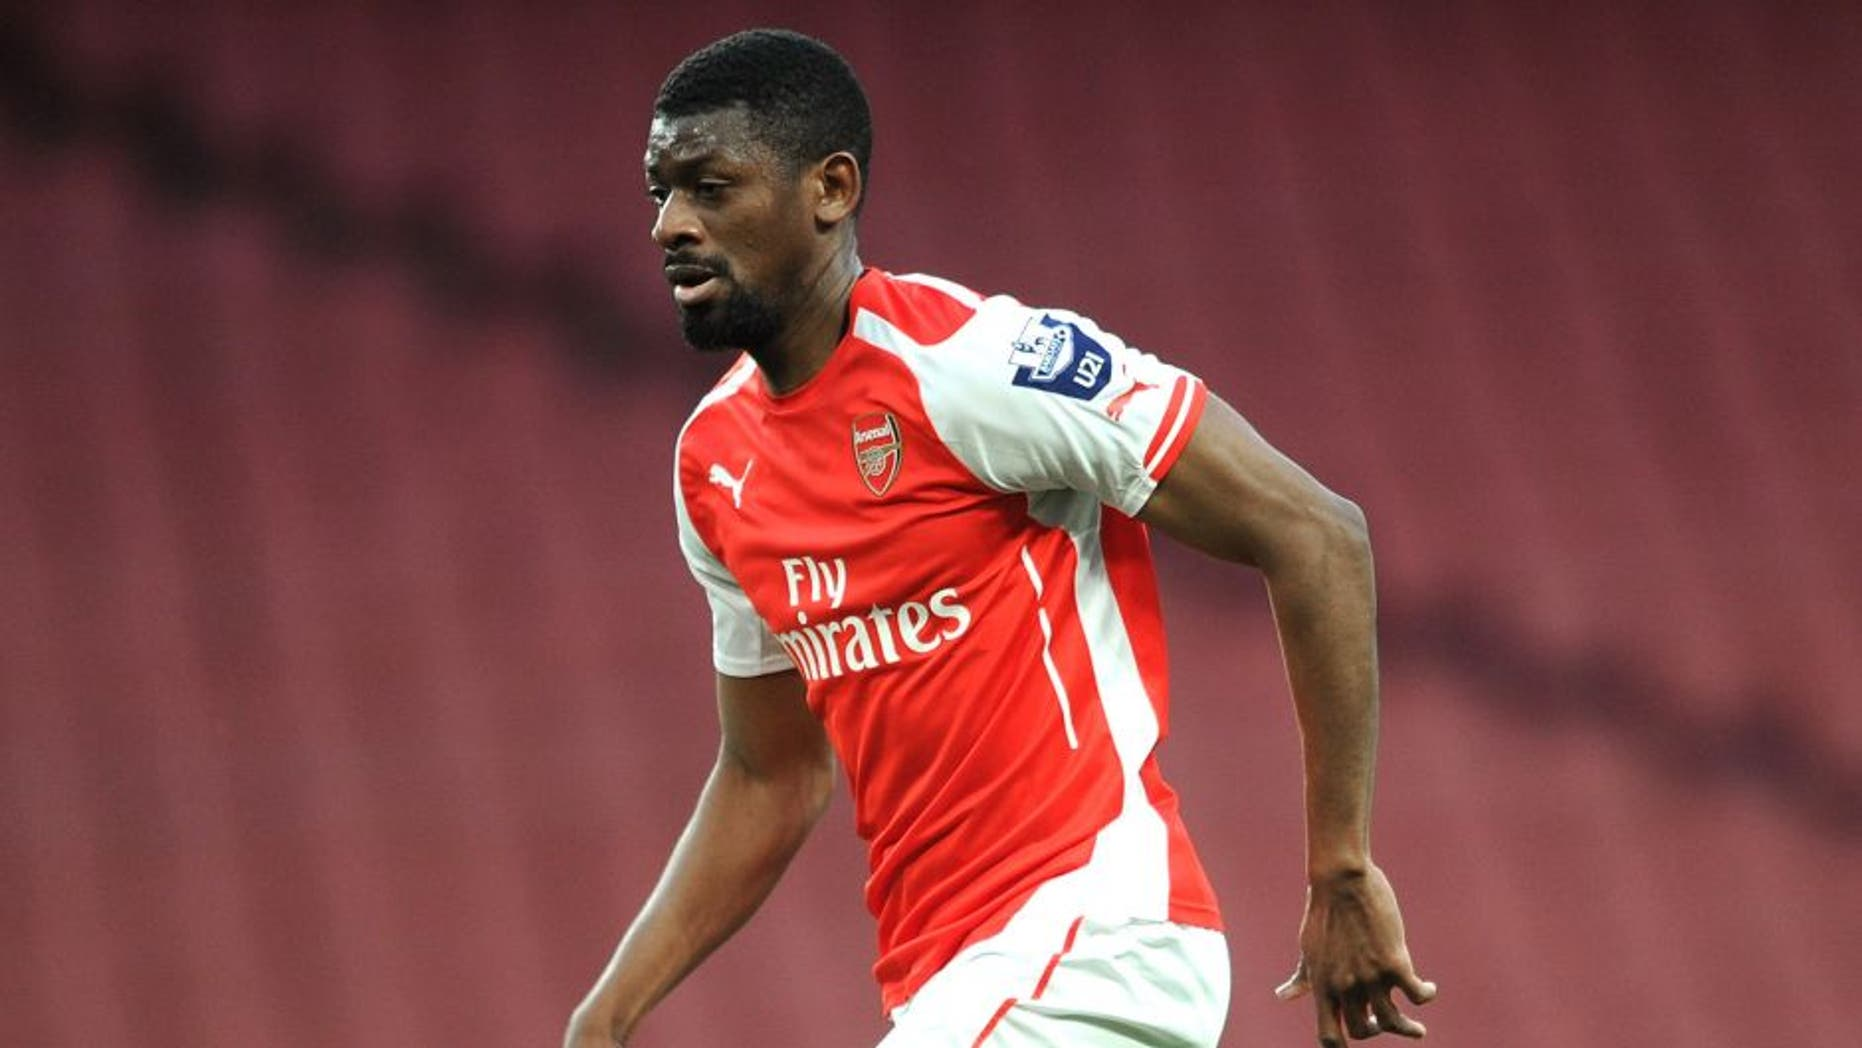 LONDON, ENGLAND - APRIL 13: Abou Diaby of Arsenal during the match between Arsenal U21 and Reading U21 in the Barclays Premier U21 League at Emirates Stadium on April 13, 2015 in London, England. (Photo by David Price/Arsenal FC via Getty Images)